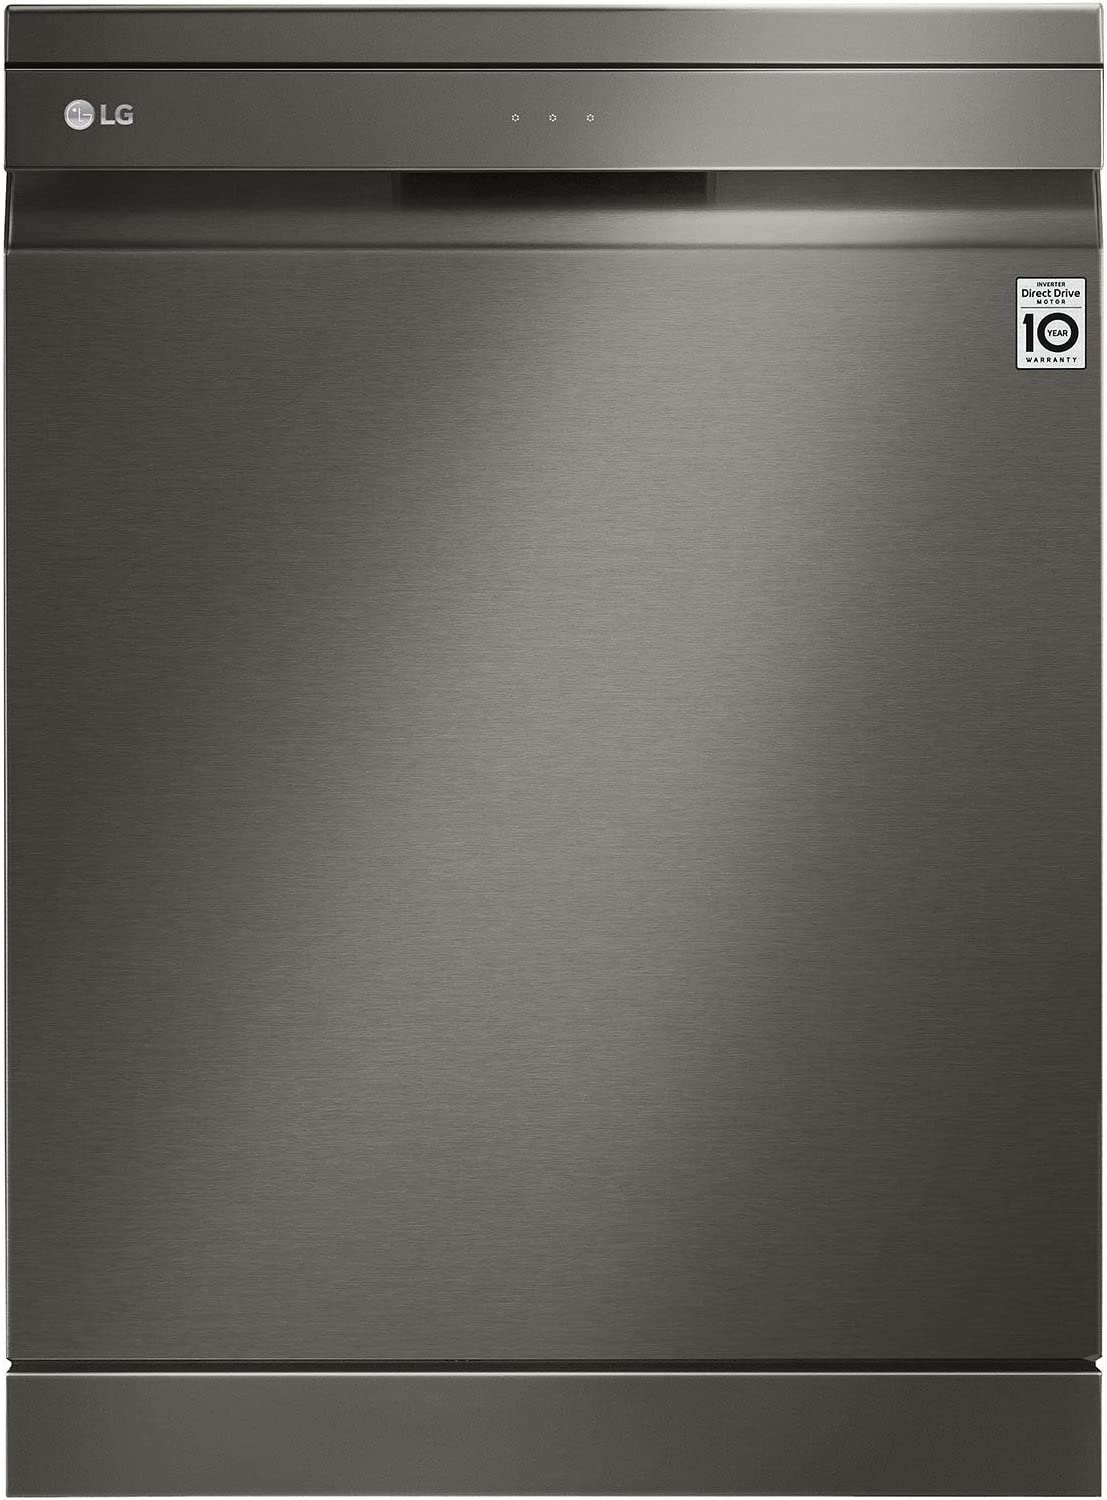 Lg 10 Programs 14 Place Settings Free Standing Steam Wash Dishwasher Matte Black Stainless Steel Dfb227hd 1 Year Warranty Price In Uae Amazon Uae Kanbkam